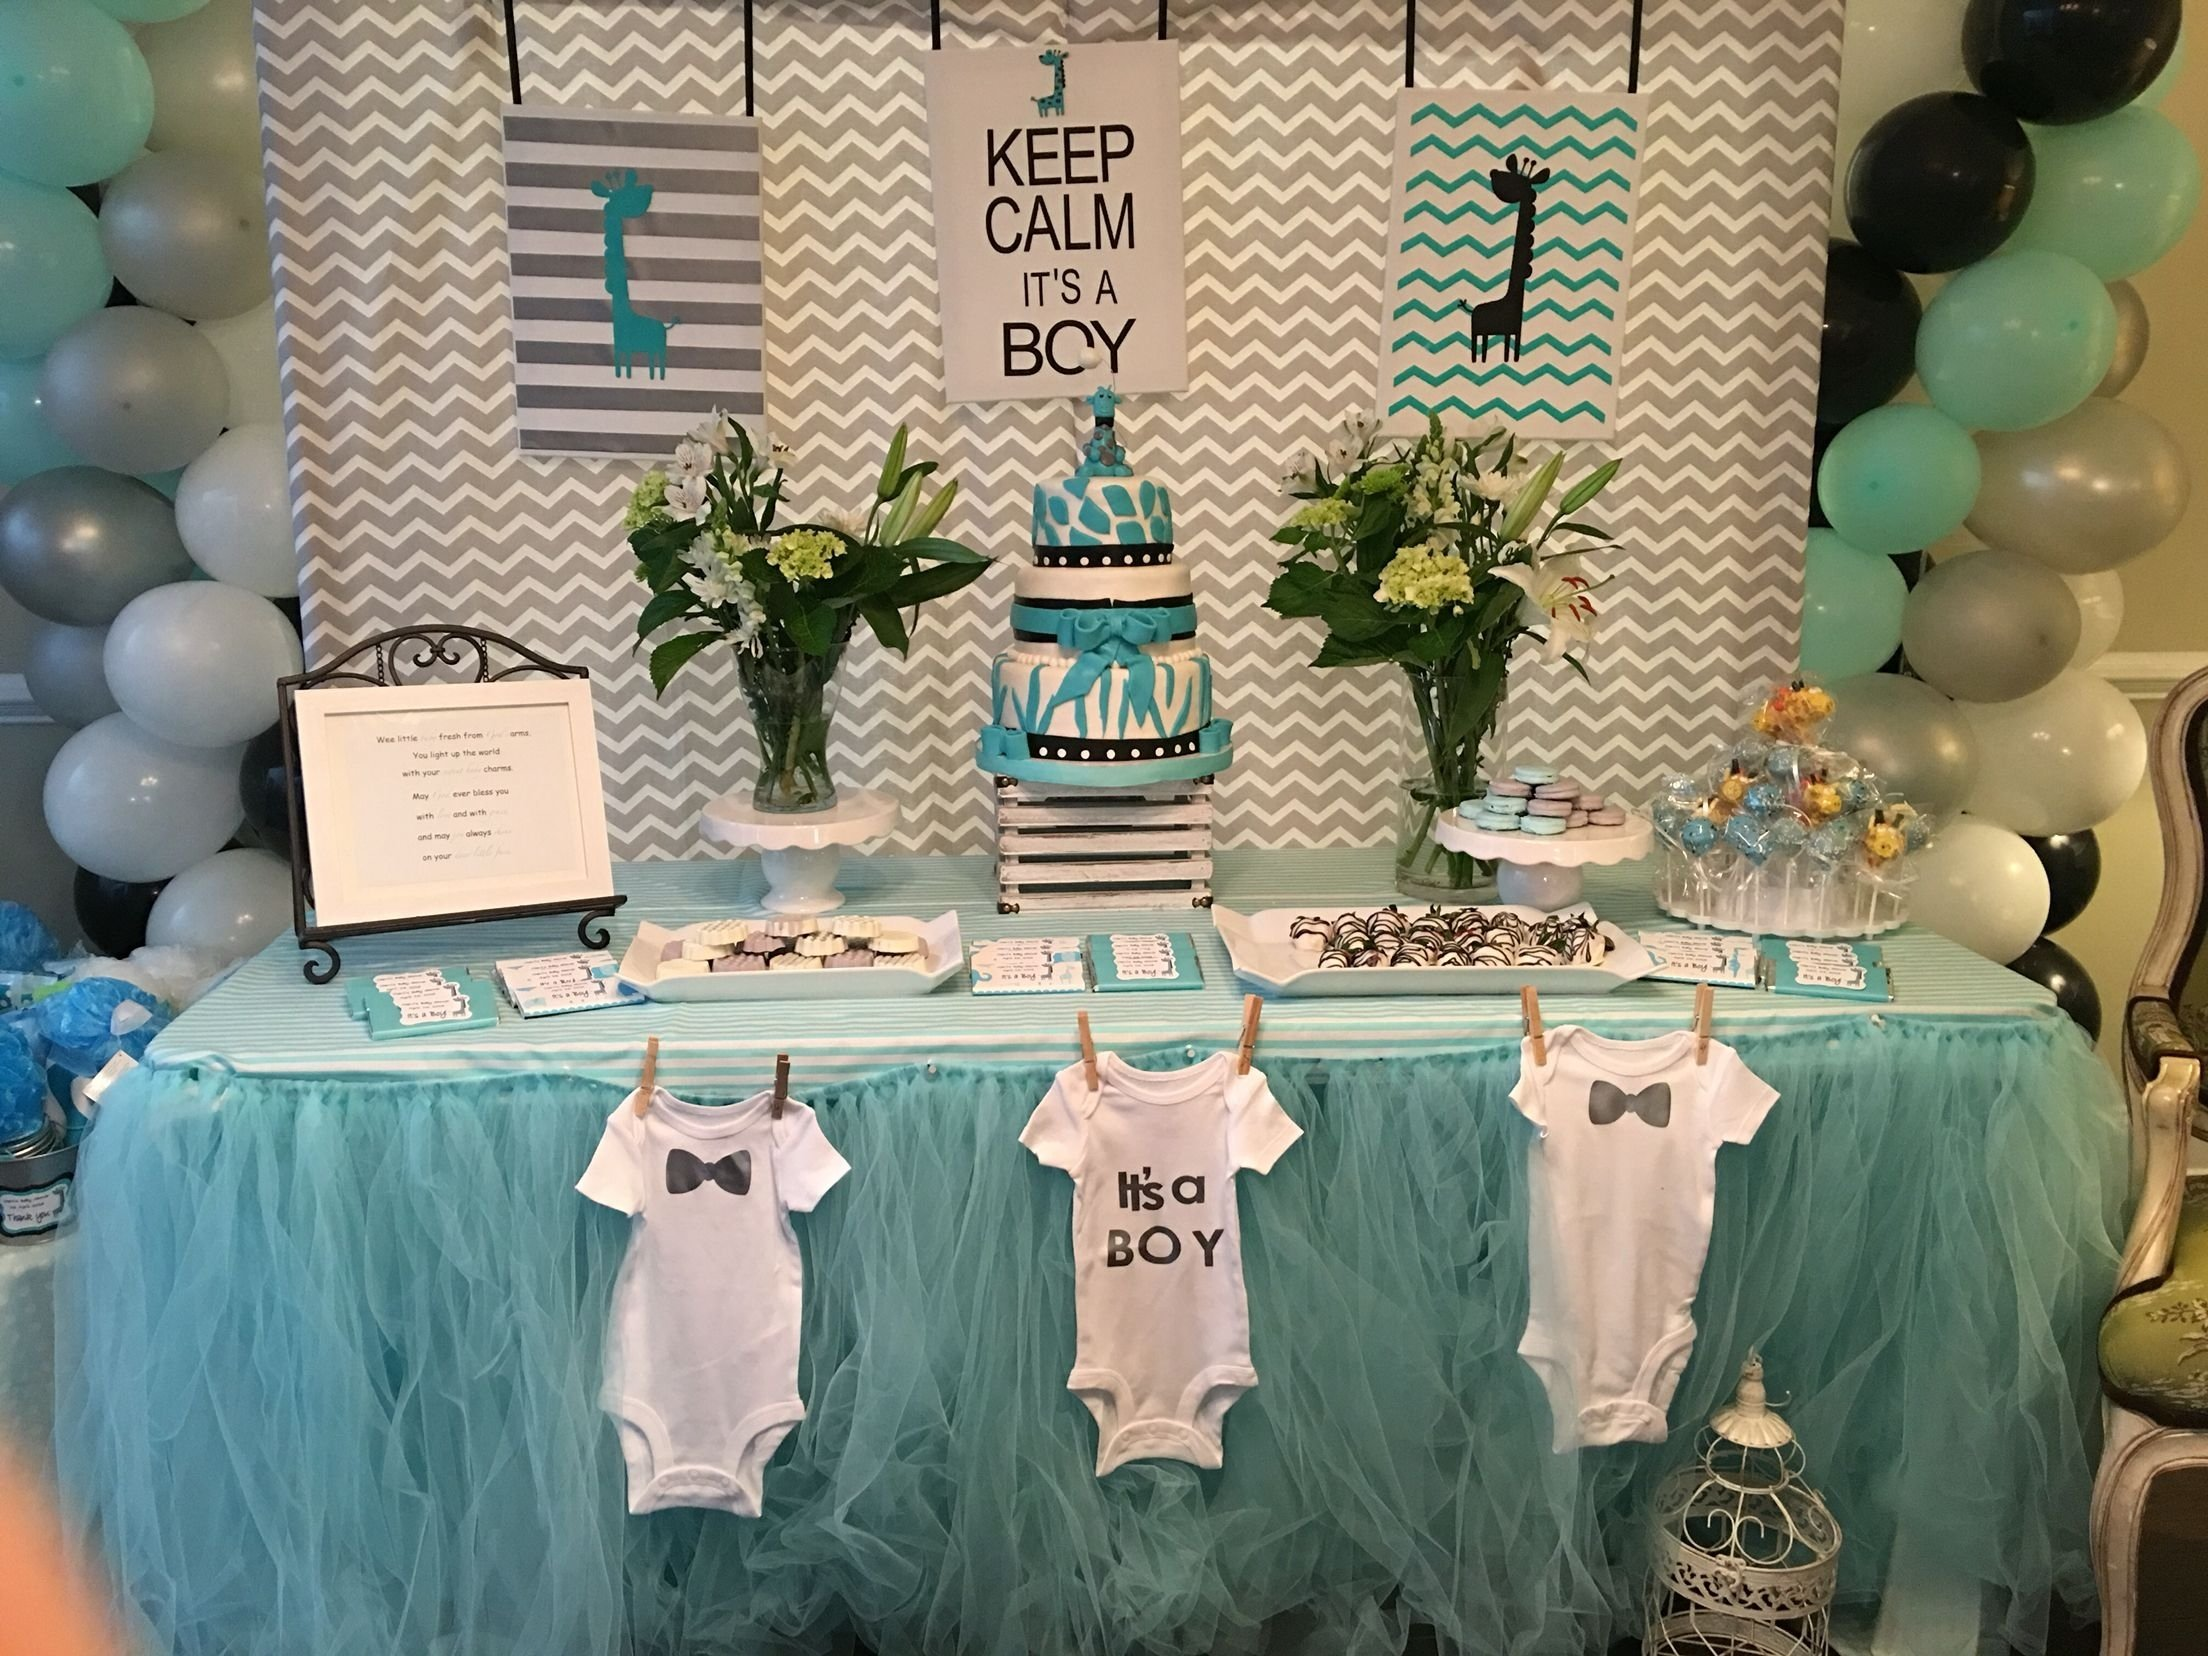 10 Trendy Baby Shower Decorations Ideas For Boys baby giraffe giraffe decoration and babies 5 2020